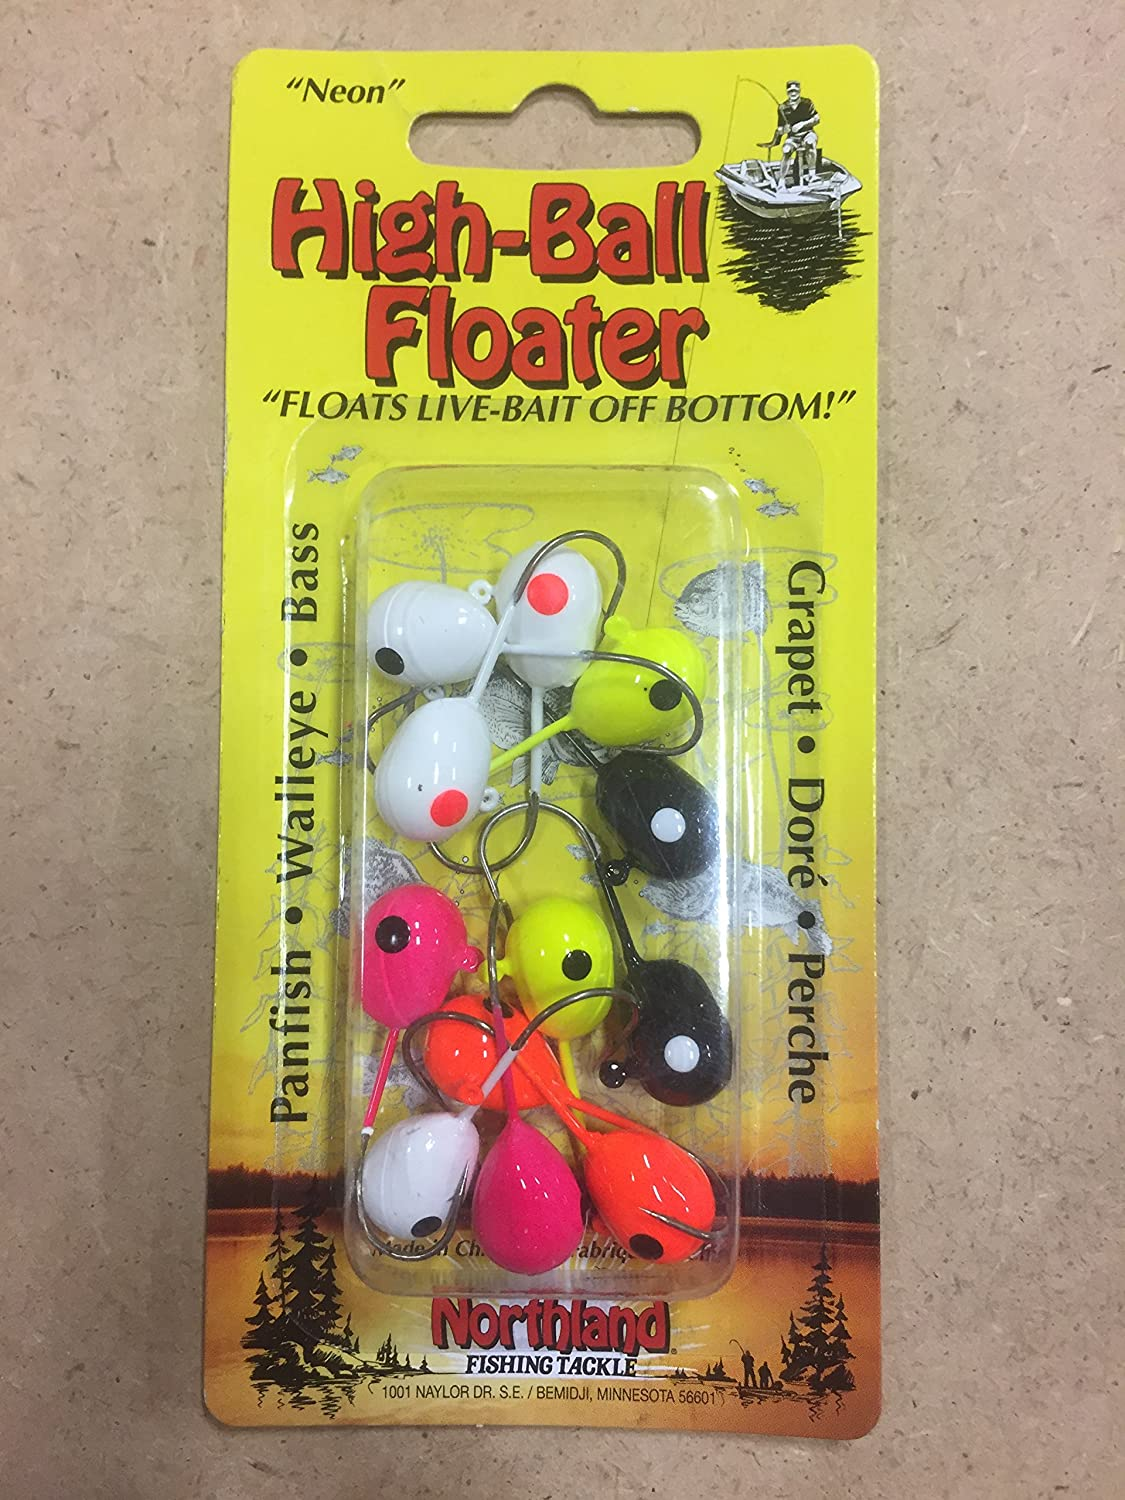 Overseas parallel import regular item Northland It is very popular Tackle FJ1-12-99 High-Ball Floater 1 #1 Assorted Bait